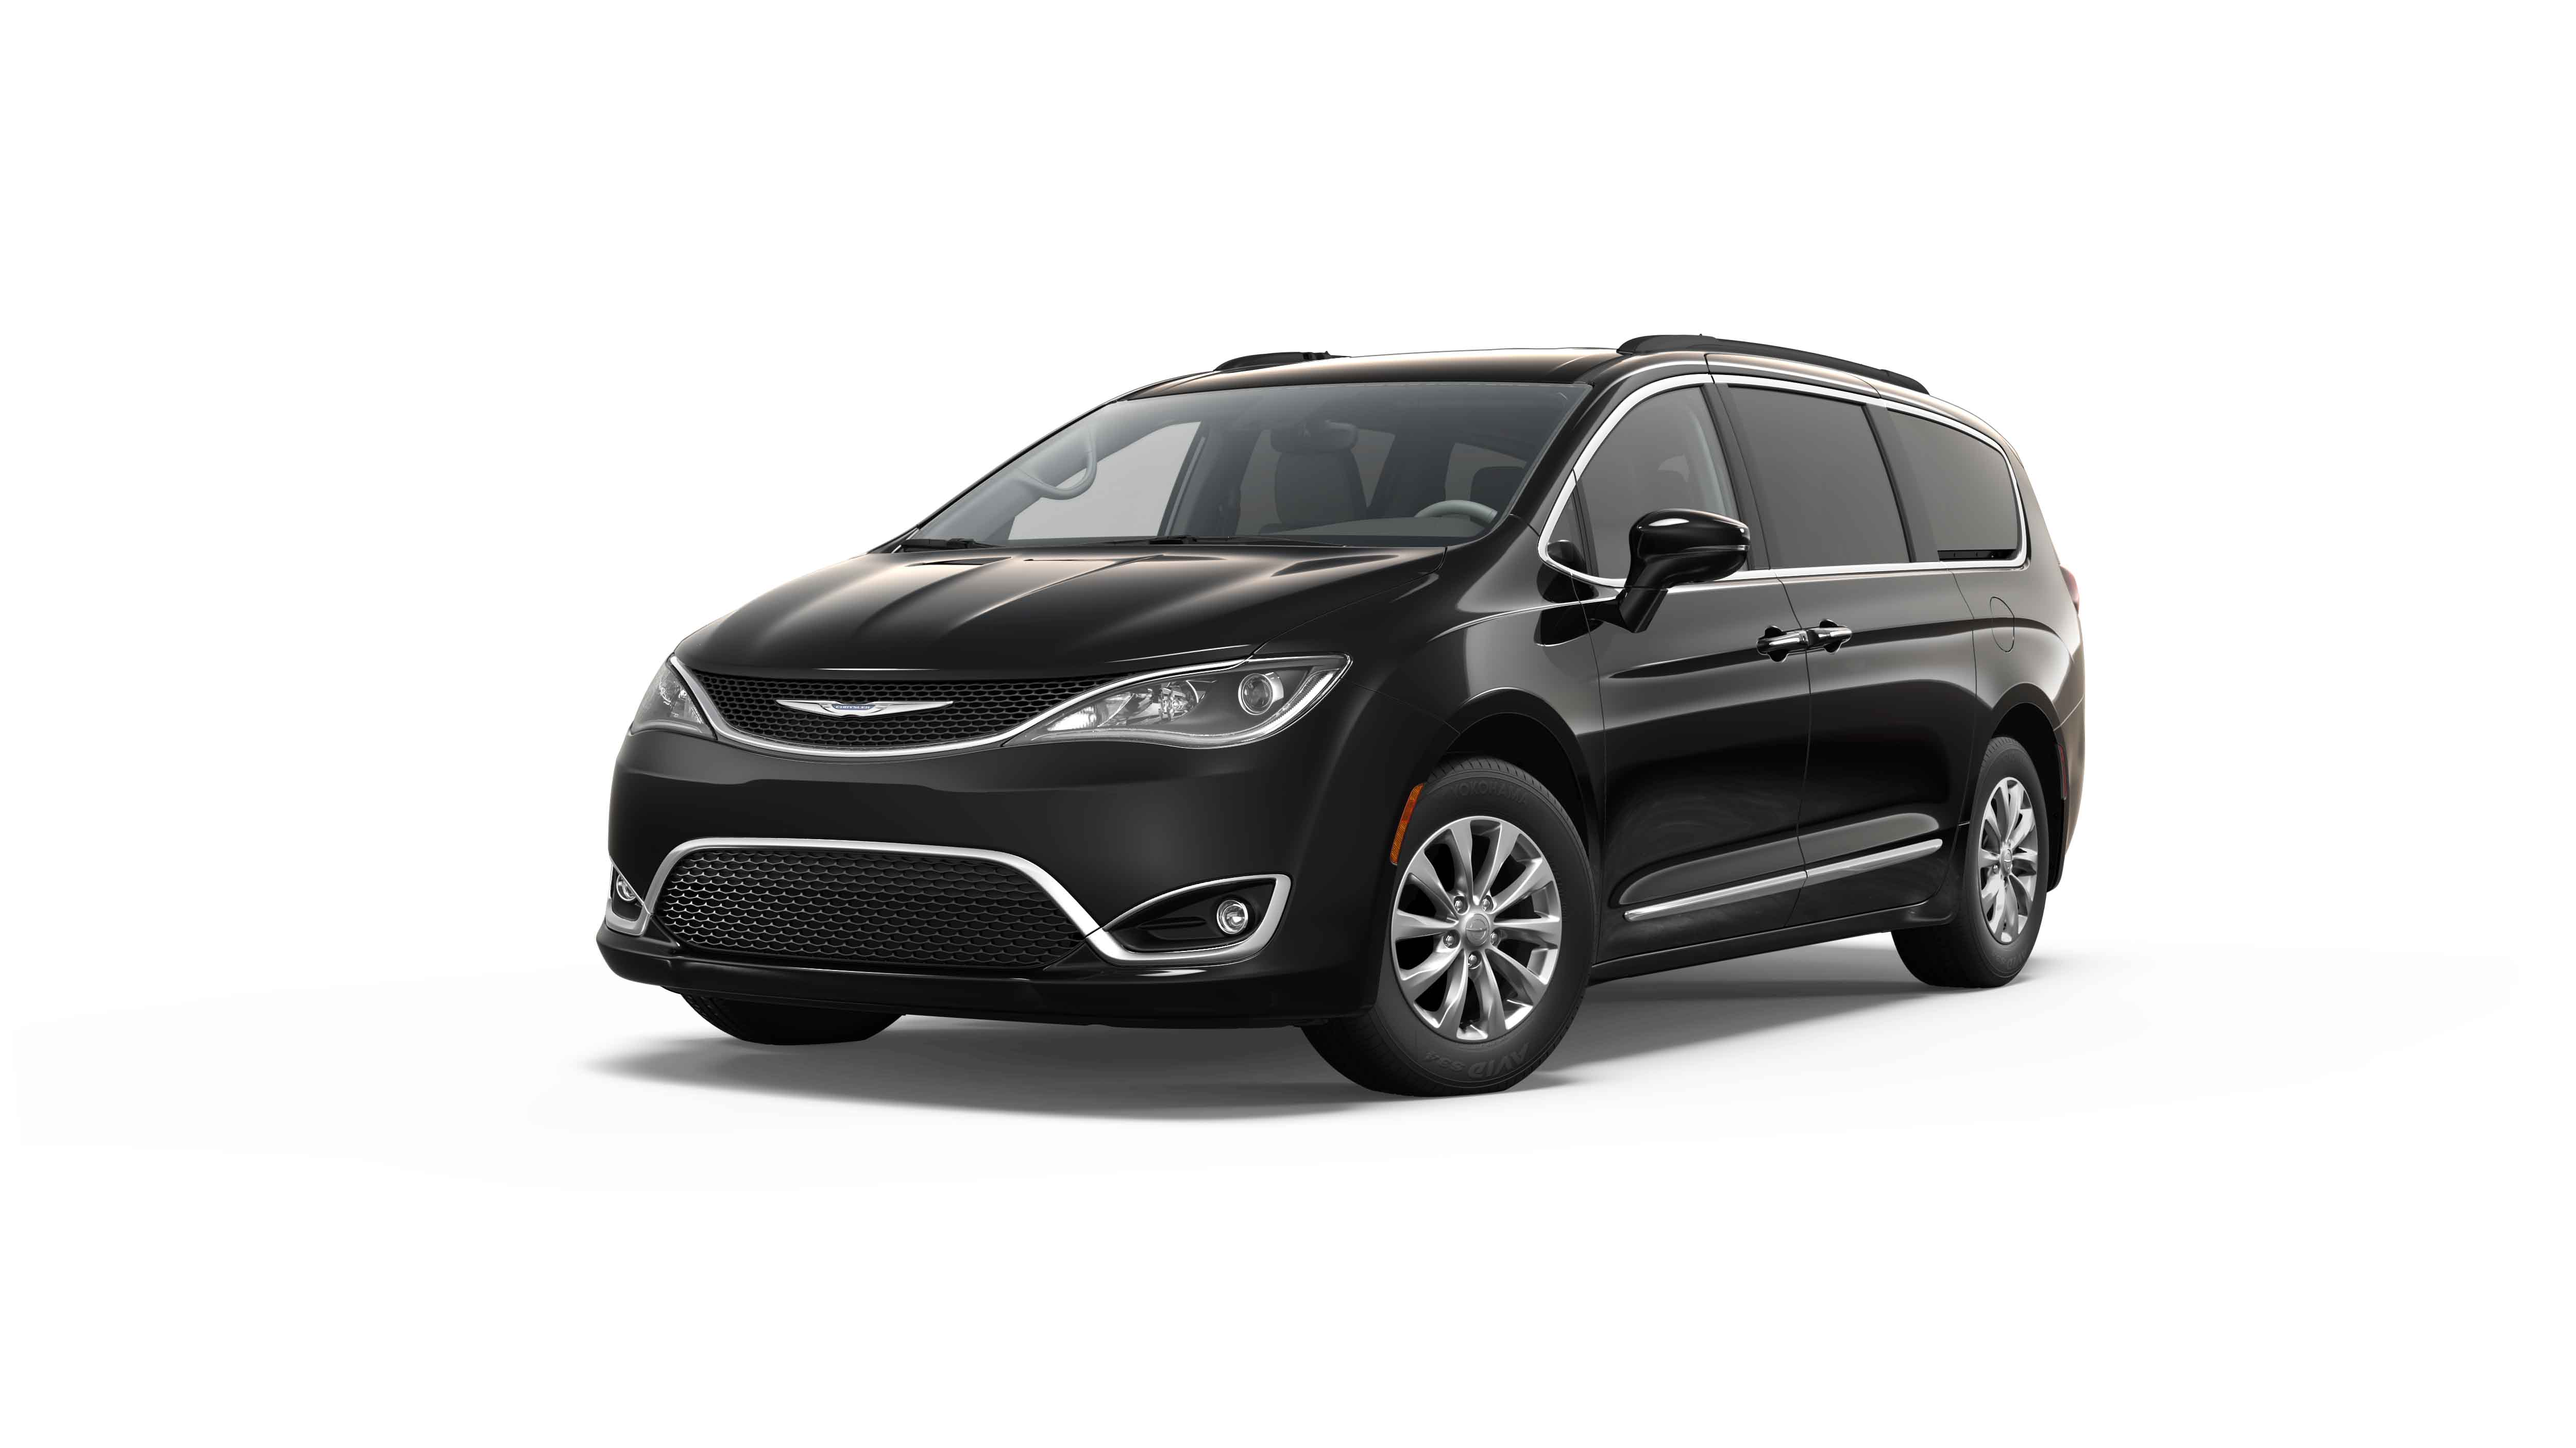 2017 Chrysler Pacifica Touring L Exterior Black